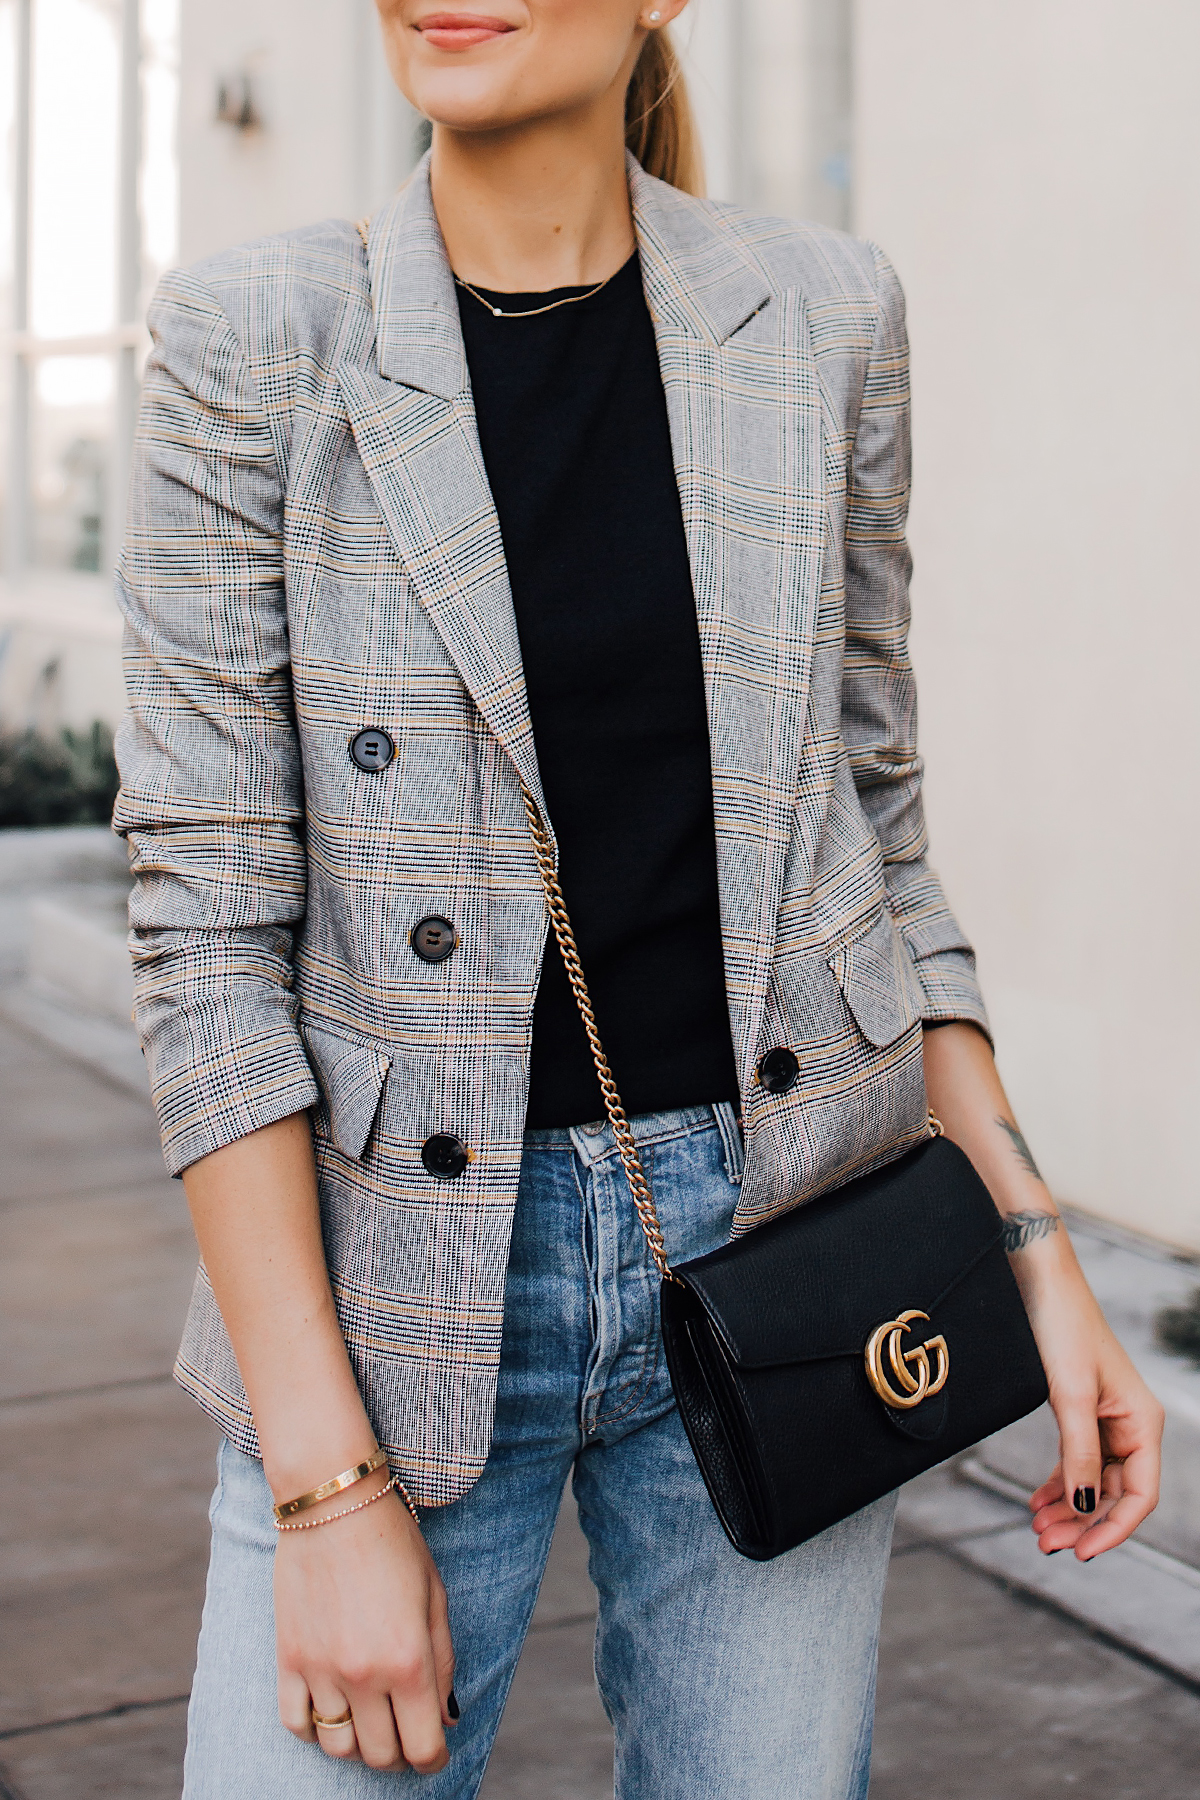 Woman Wearing Plaid Blazer Outfit Jeans Gucci Black Handbag Fashion Jackson San Diego Fashion Blogger Street Style